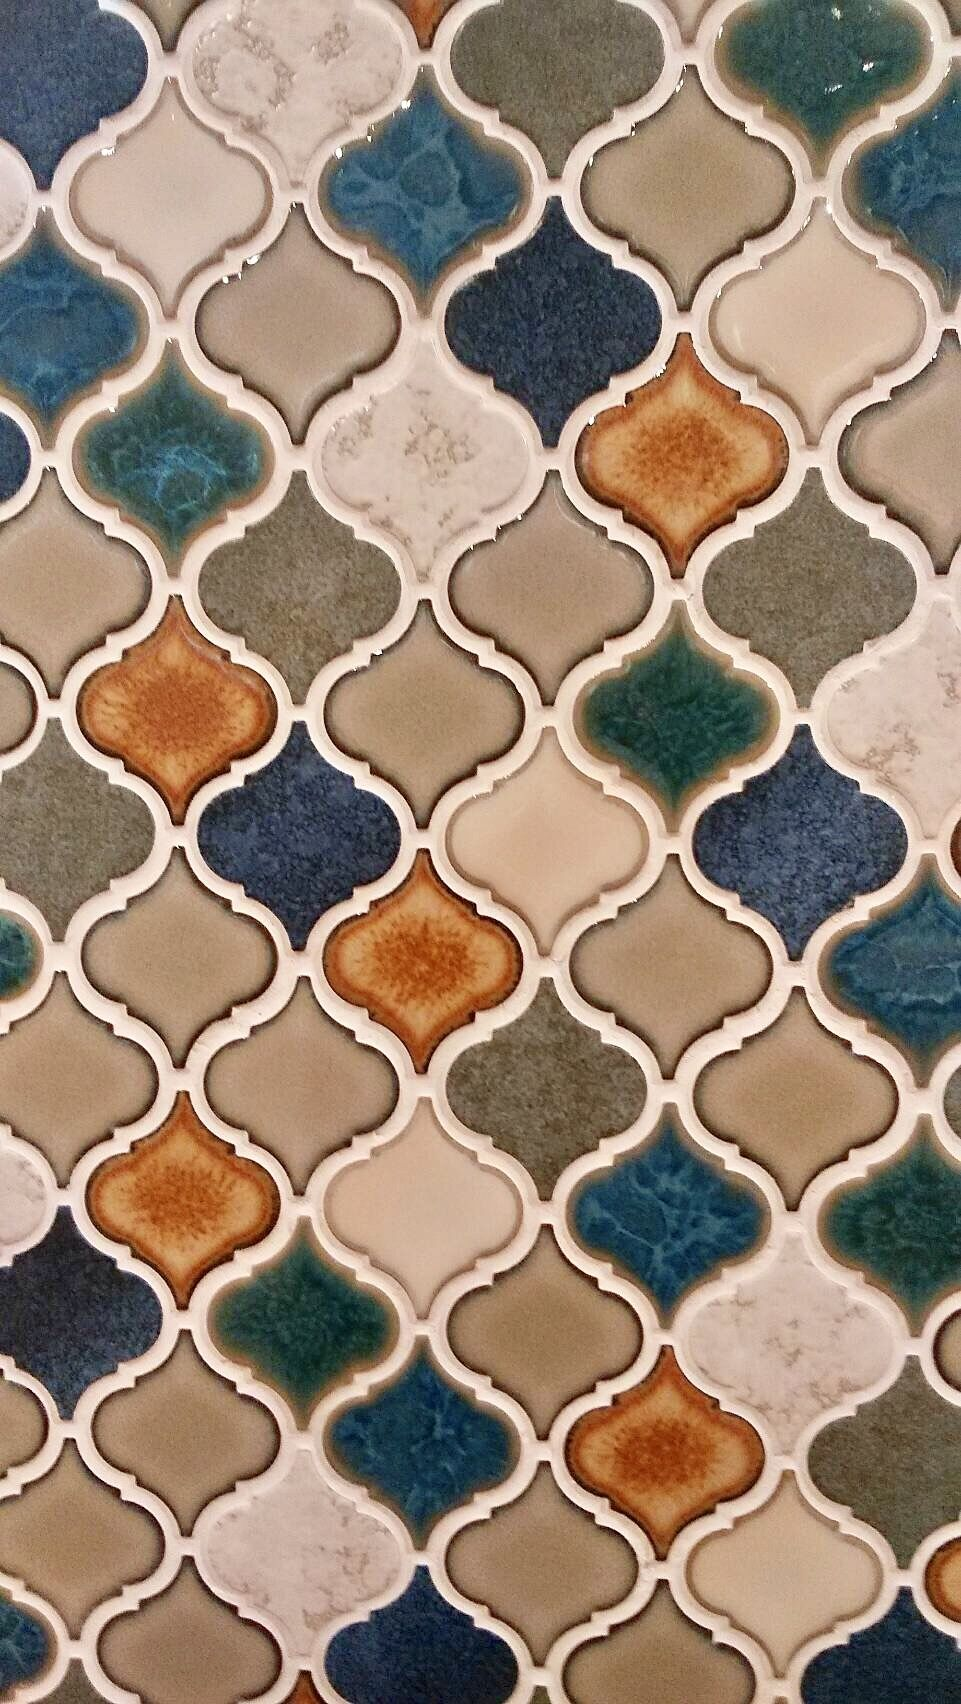 Moroccan Tile design pattern wallpaper for phone (With